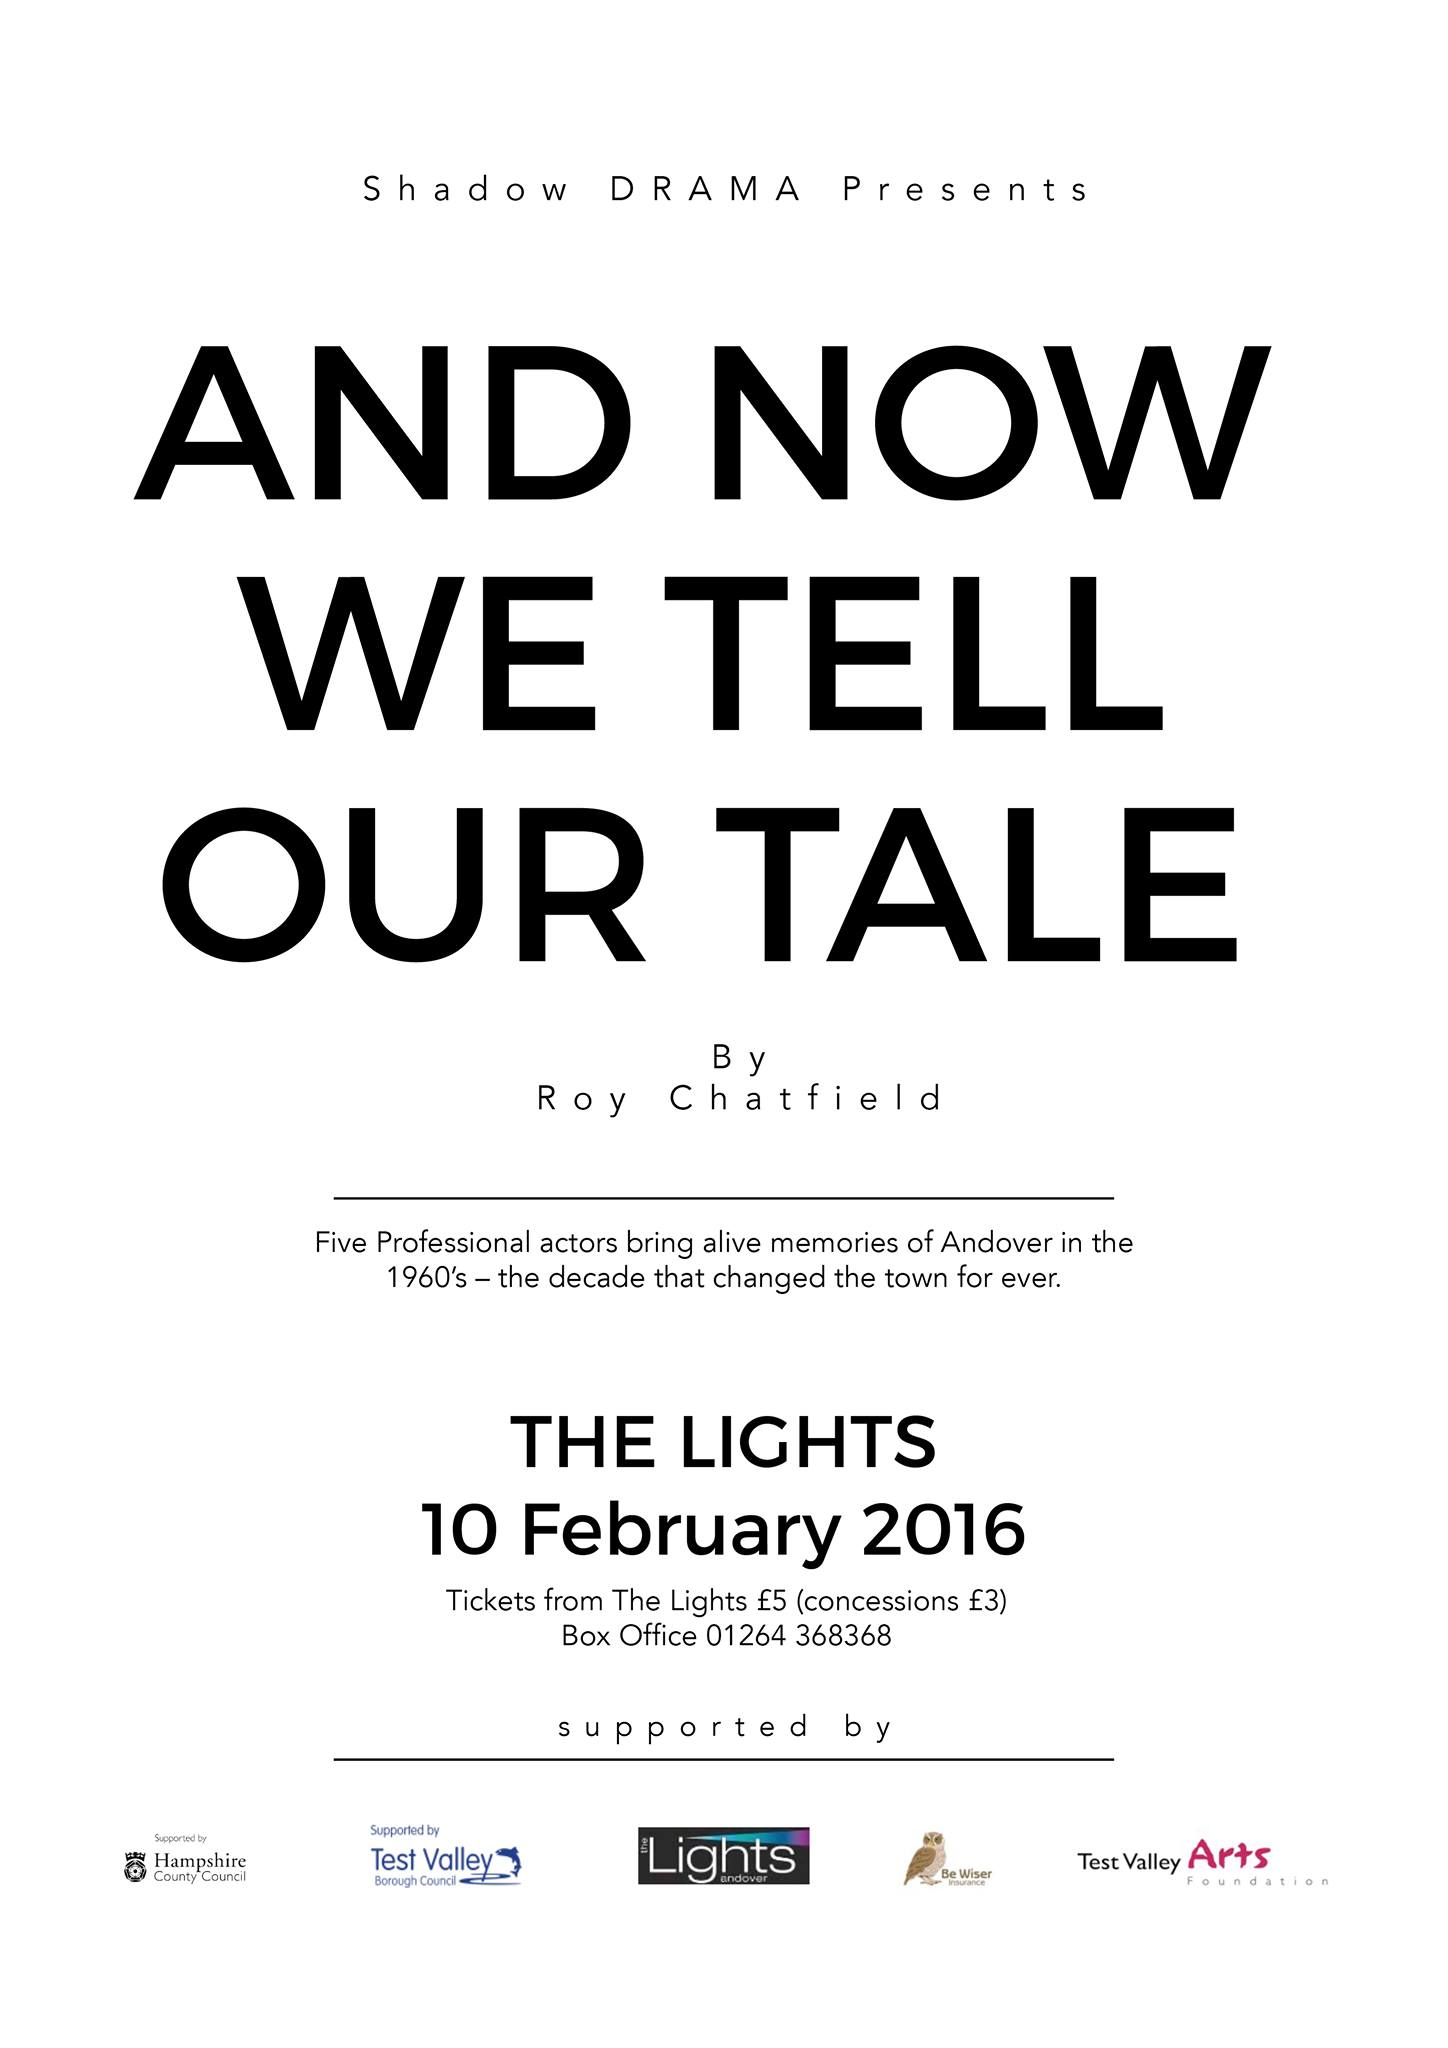 Roy Chatfield's new play only one performance at The Lights